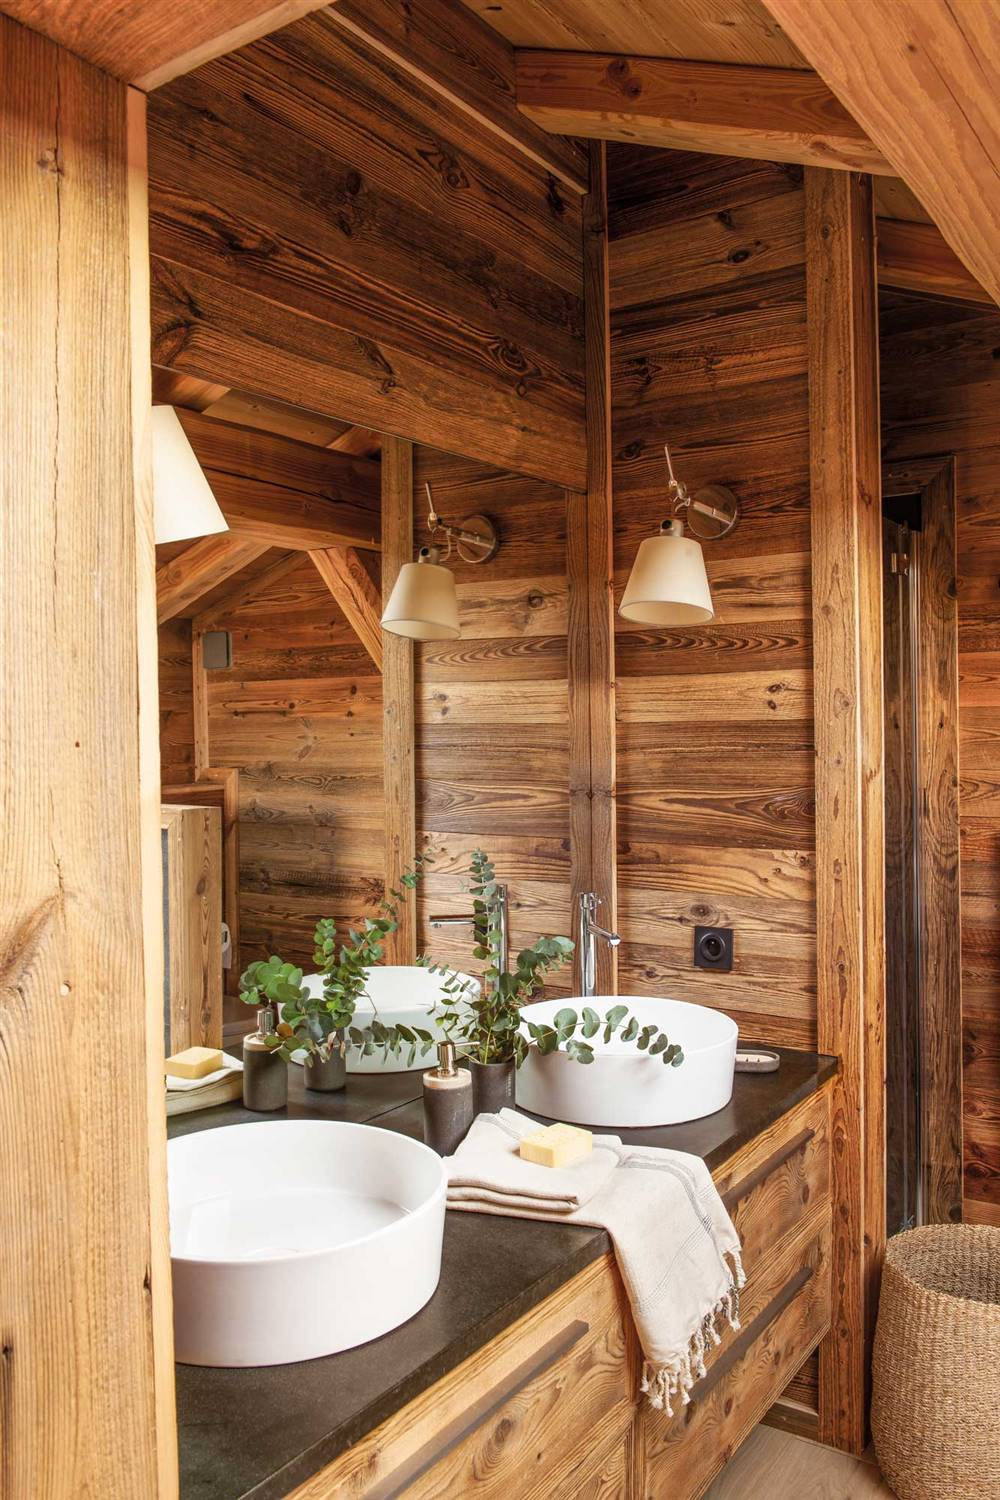 Wooden Furniture In The Bathroom Advantages Disadvantages